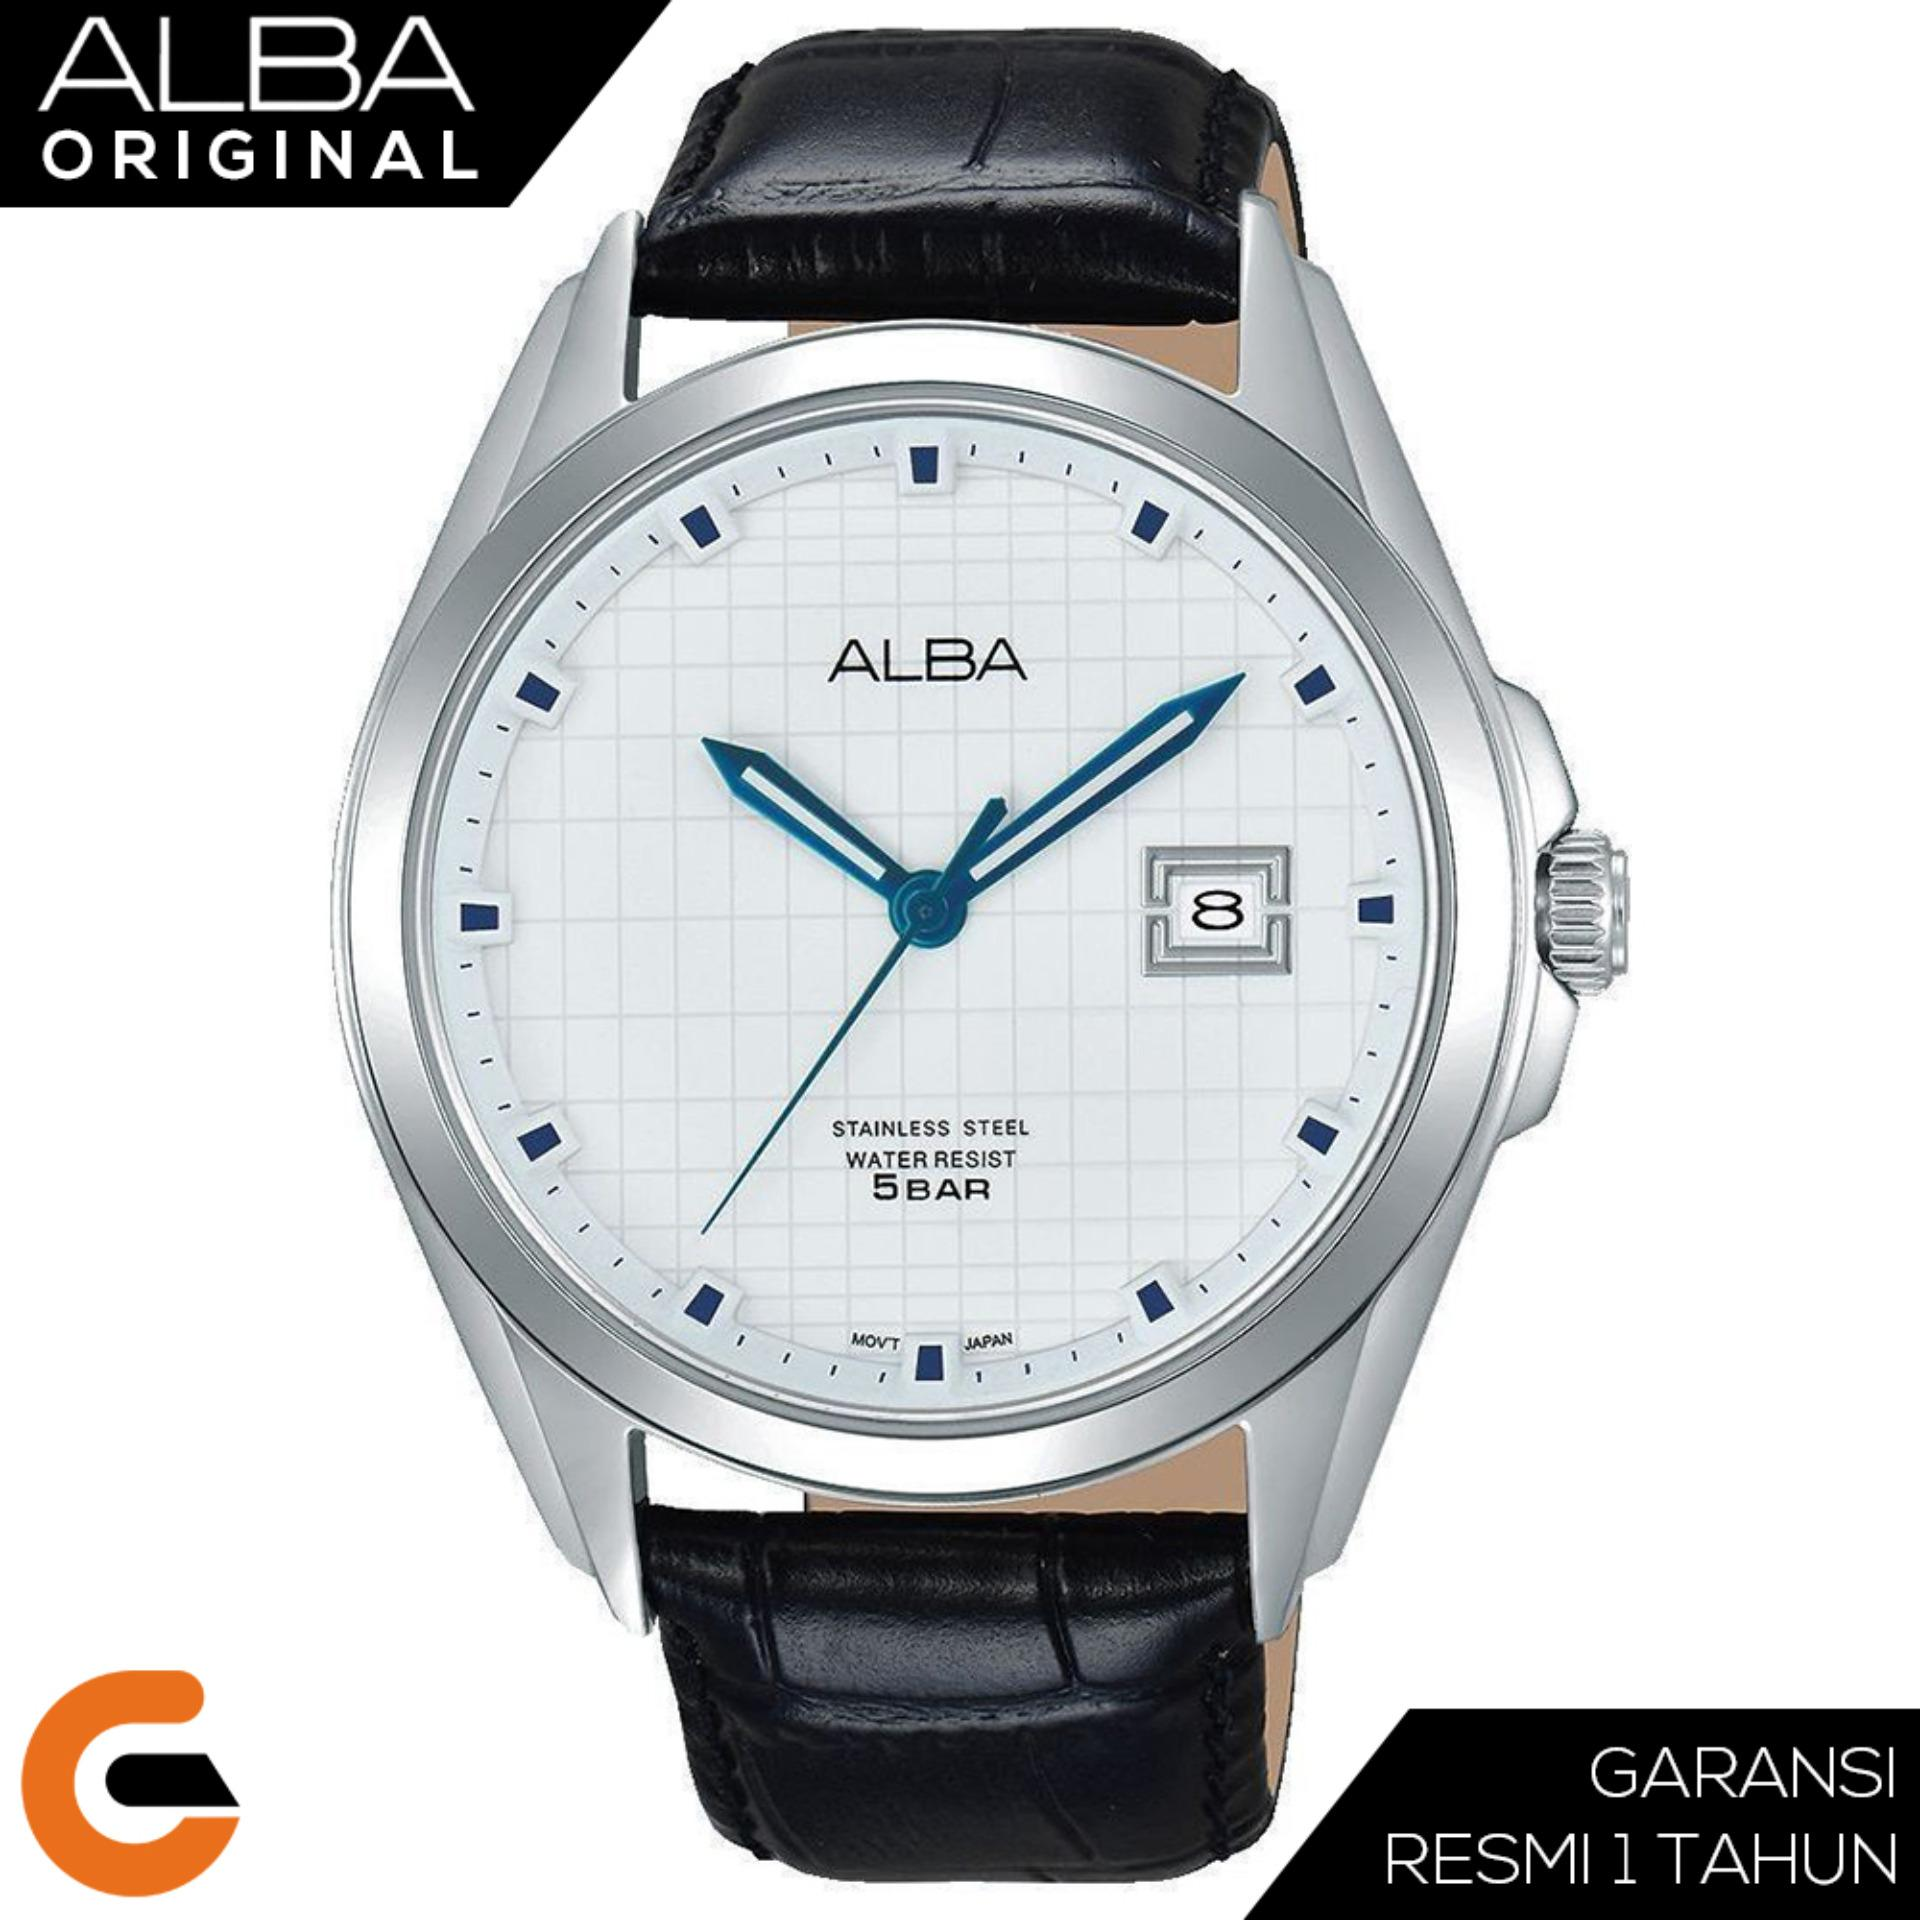 ALBA Pretige Jam Tangan Pria Tali Kulit / Stainless Steel Quartz Movement AS9C